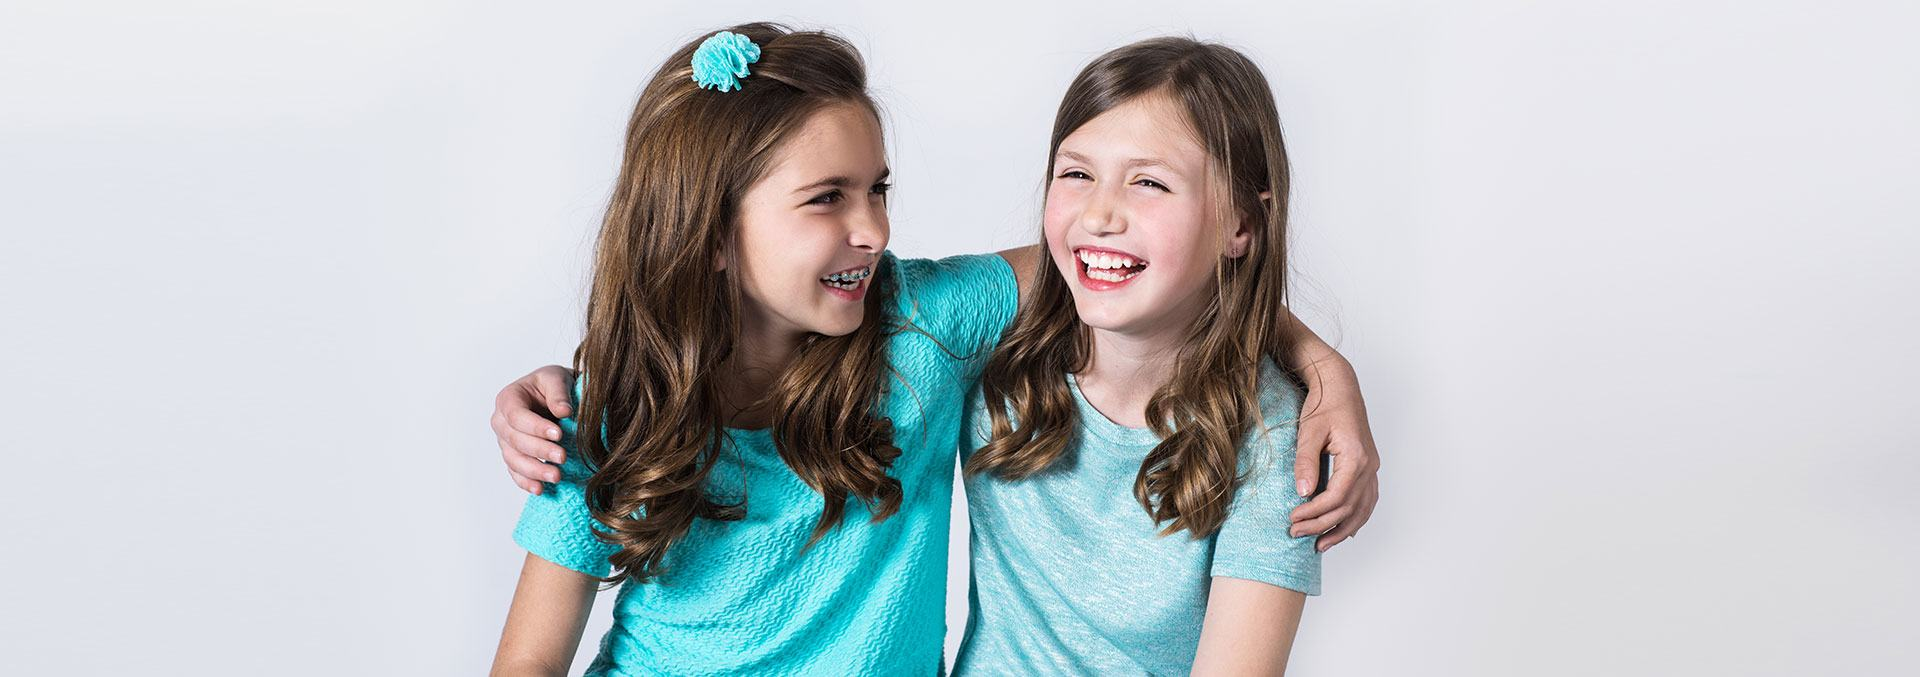 two young girls with their arms around each other laughing